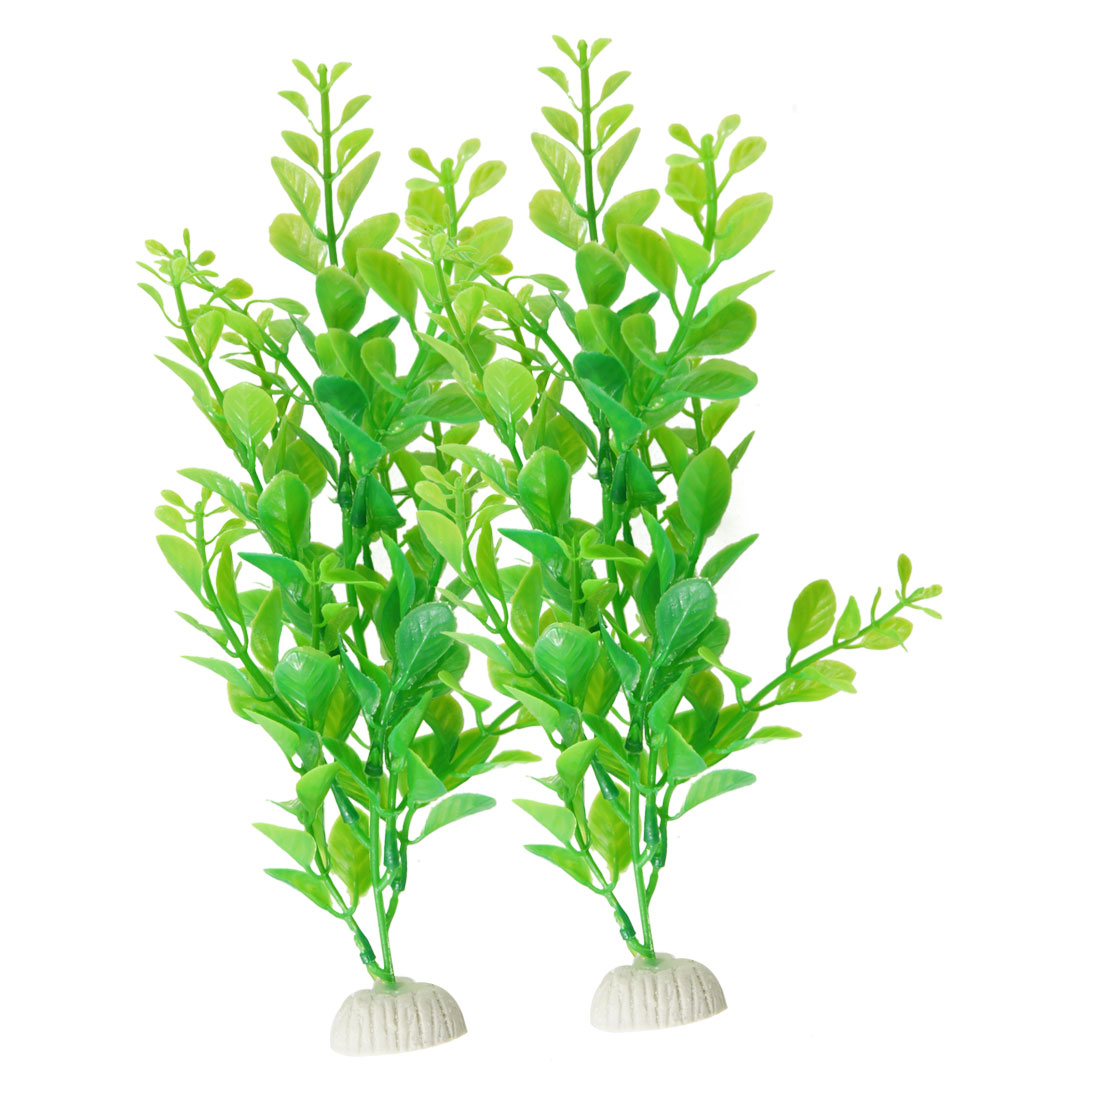 "9"" High Green Manmade Water Plant Grass 2 Pcs for Fish Tank Aquarium"